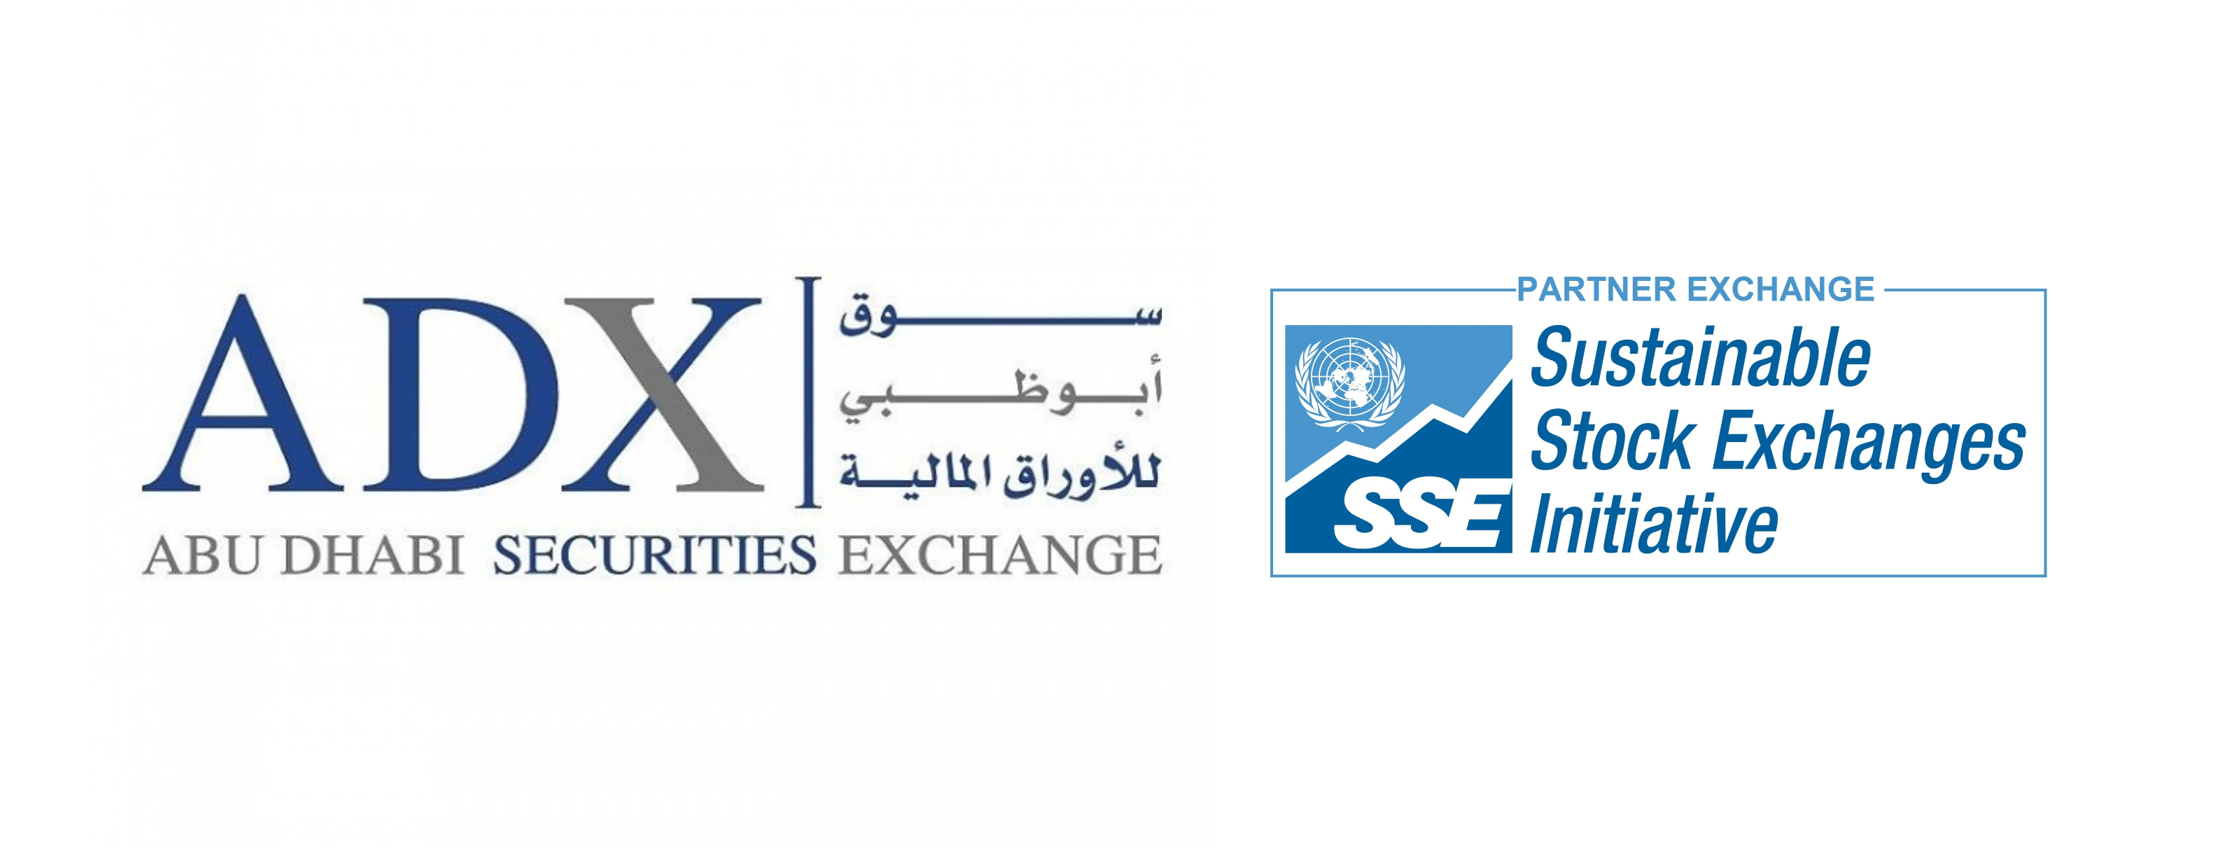 ADX joins United Nations Sustainable Stock Exchanges initiative to promote sustainability and transparency